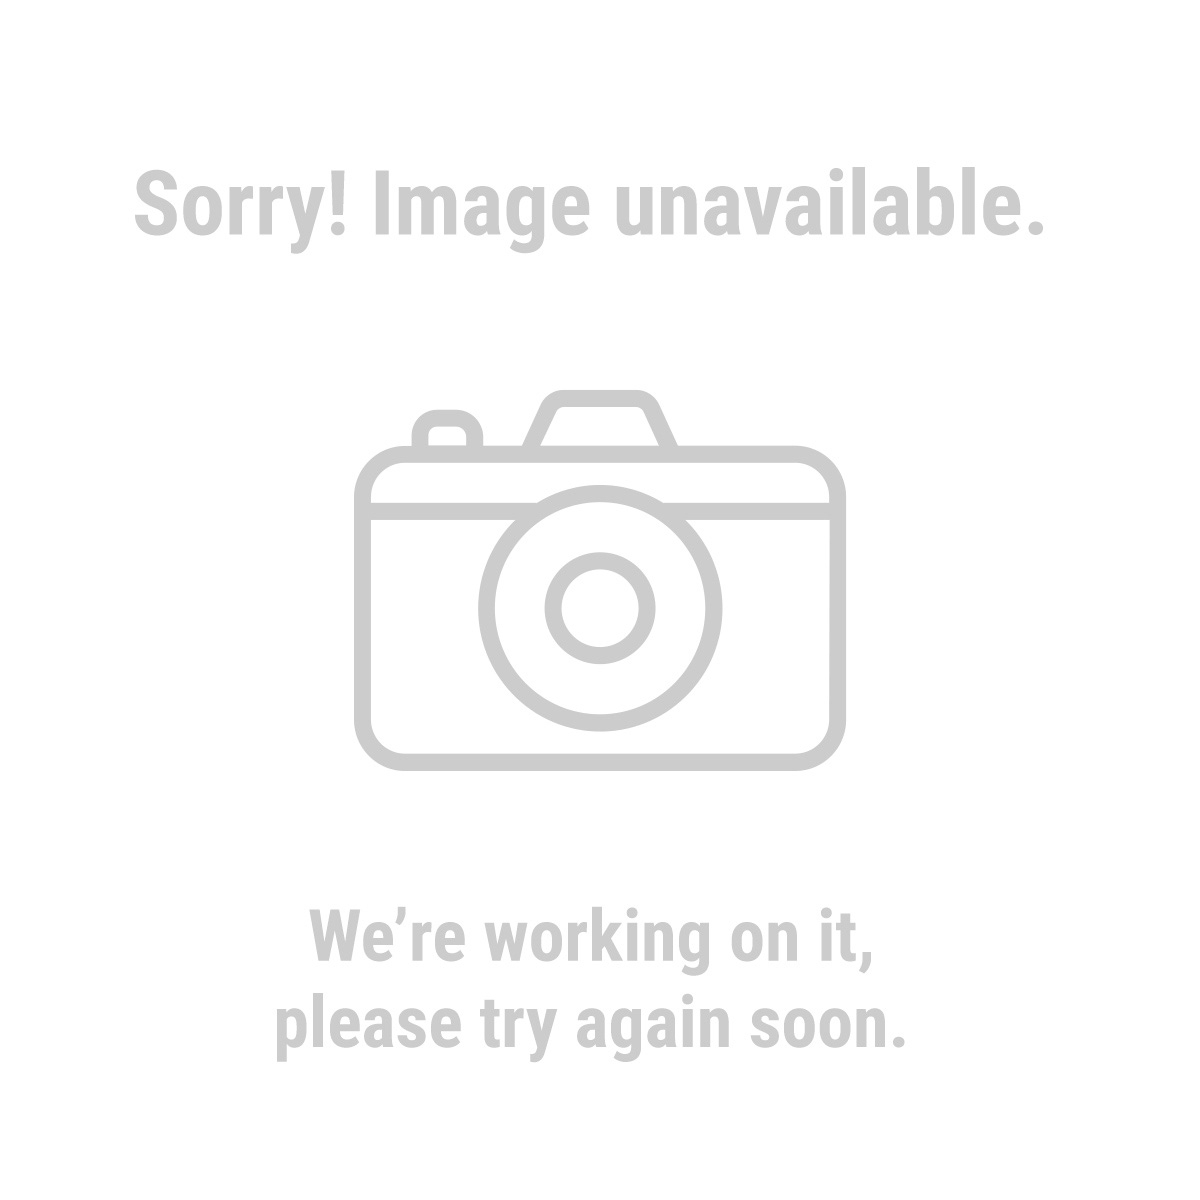 Haul-Master 63102 Submersible Trailer Light - Right Side